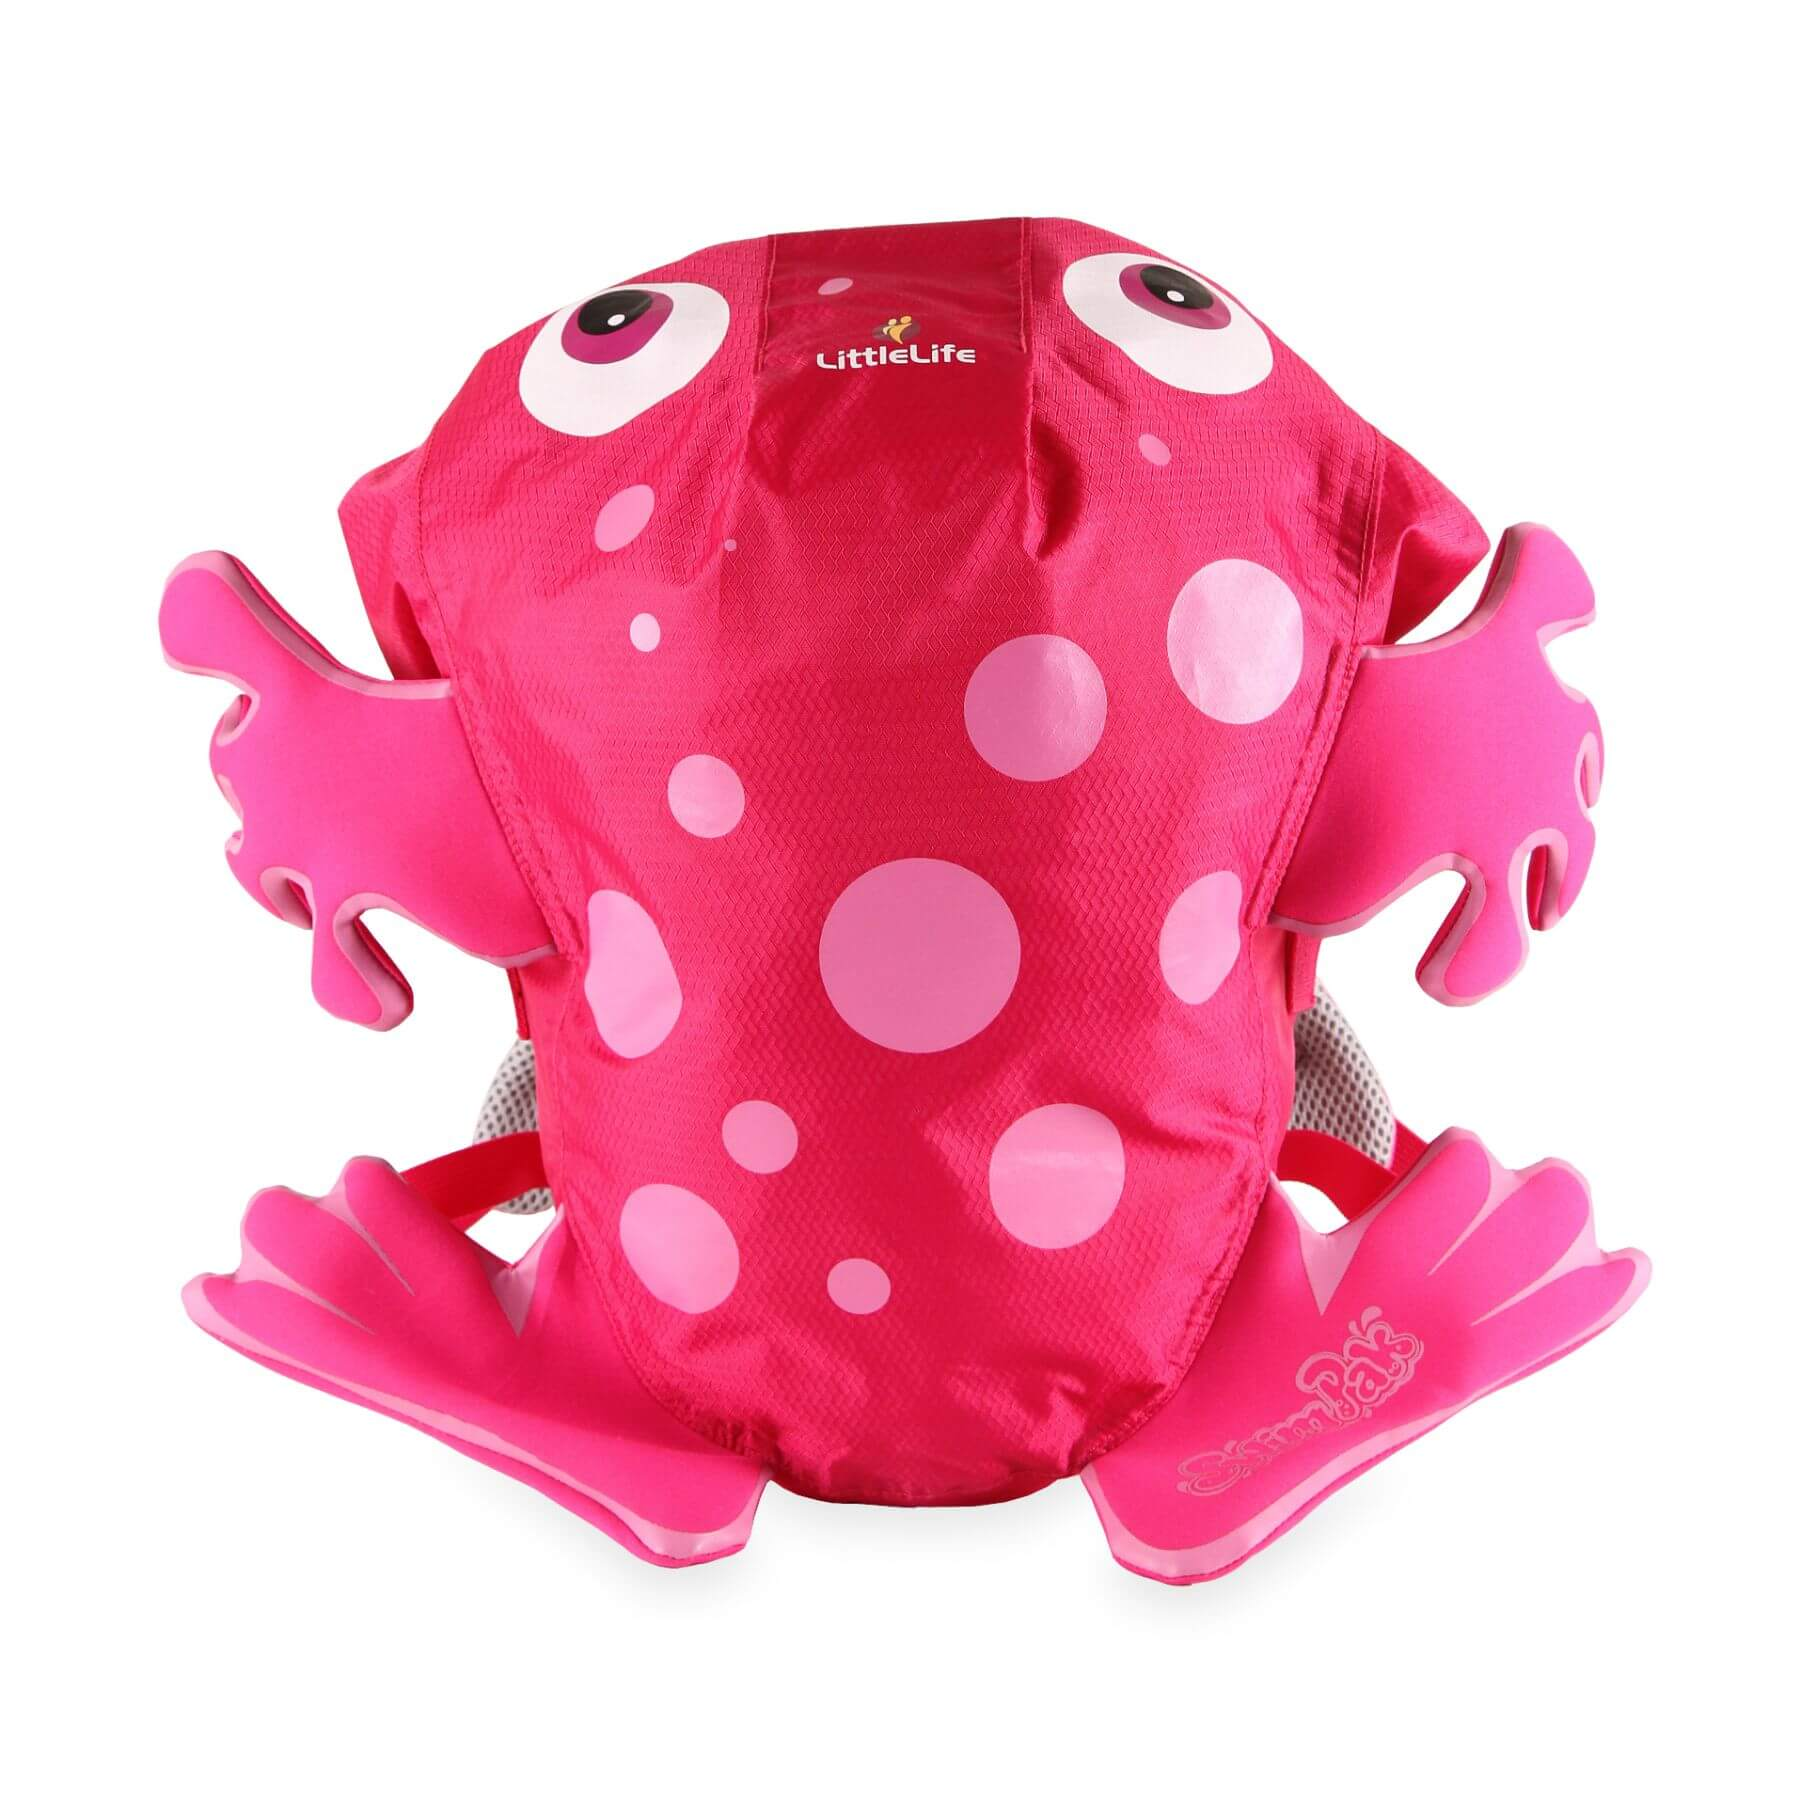 Little Life Animal Kids SwimPak - Pink Frog